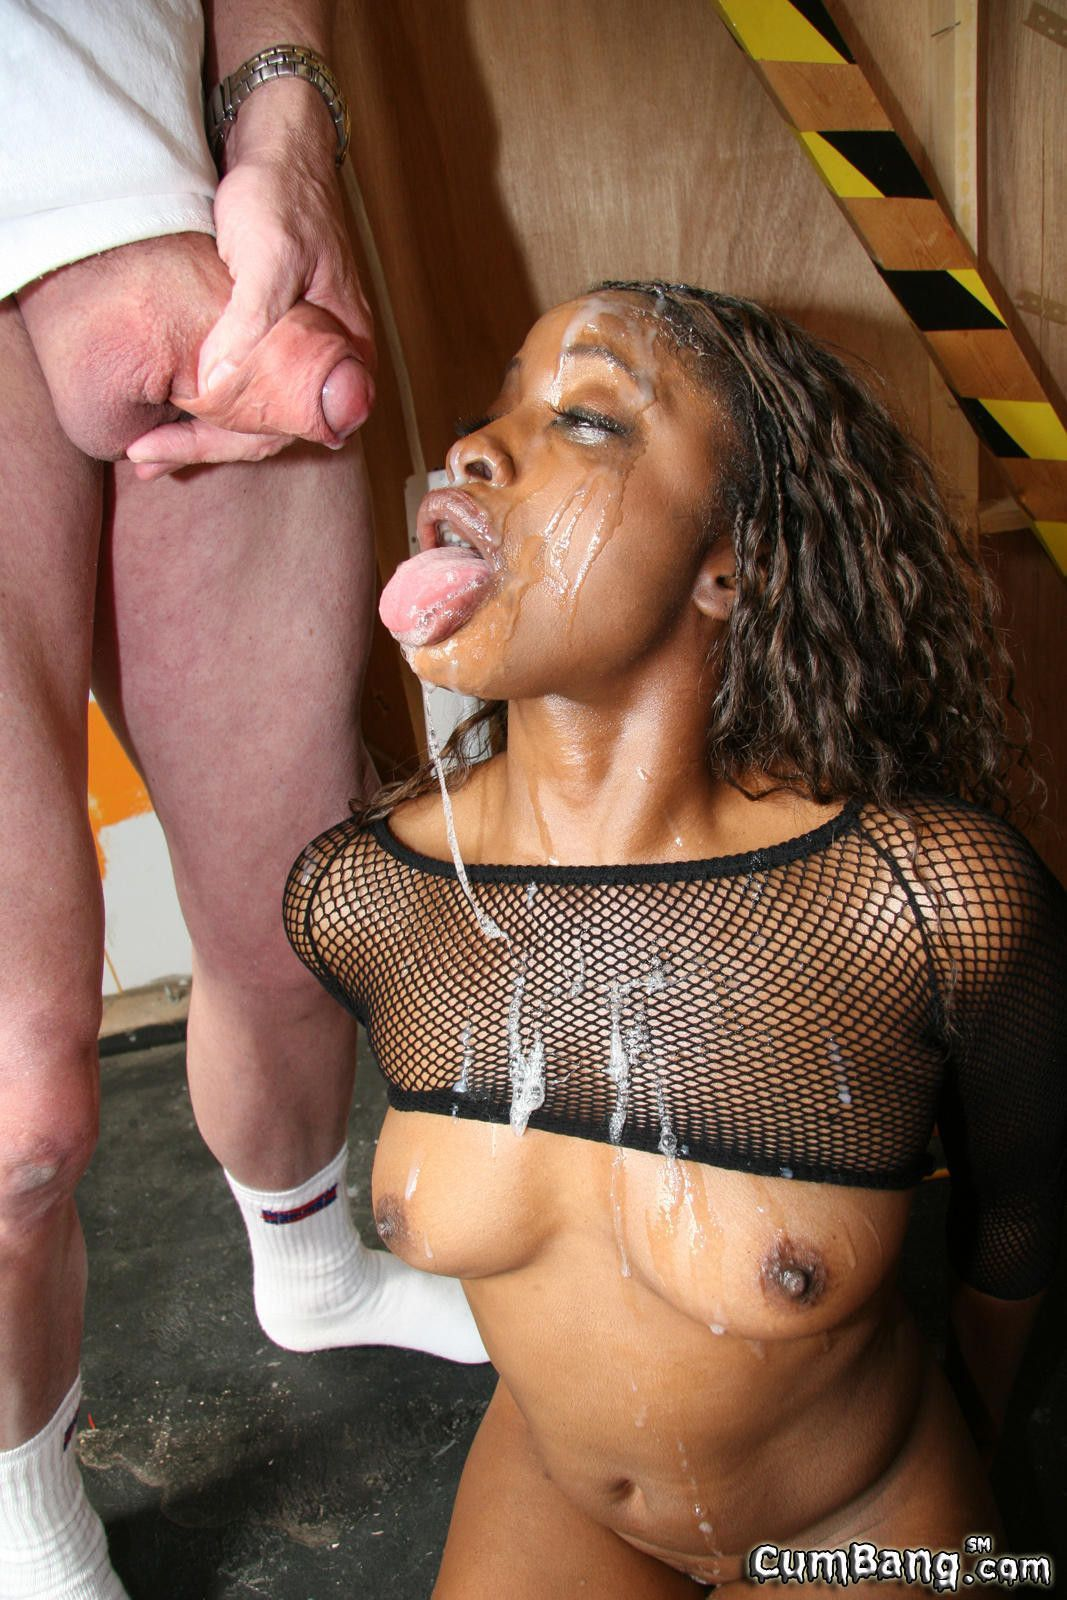 100 Free Black Porn monique black porn star first anal. top images 100% free.